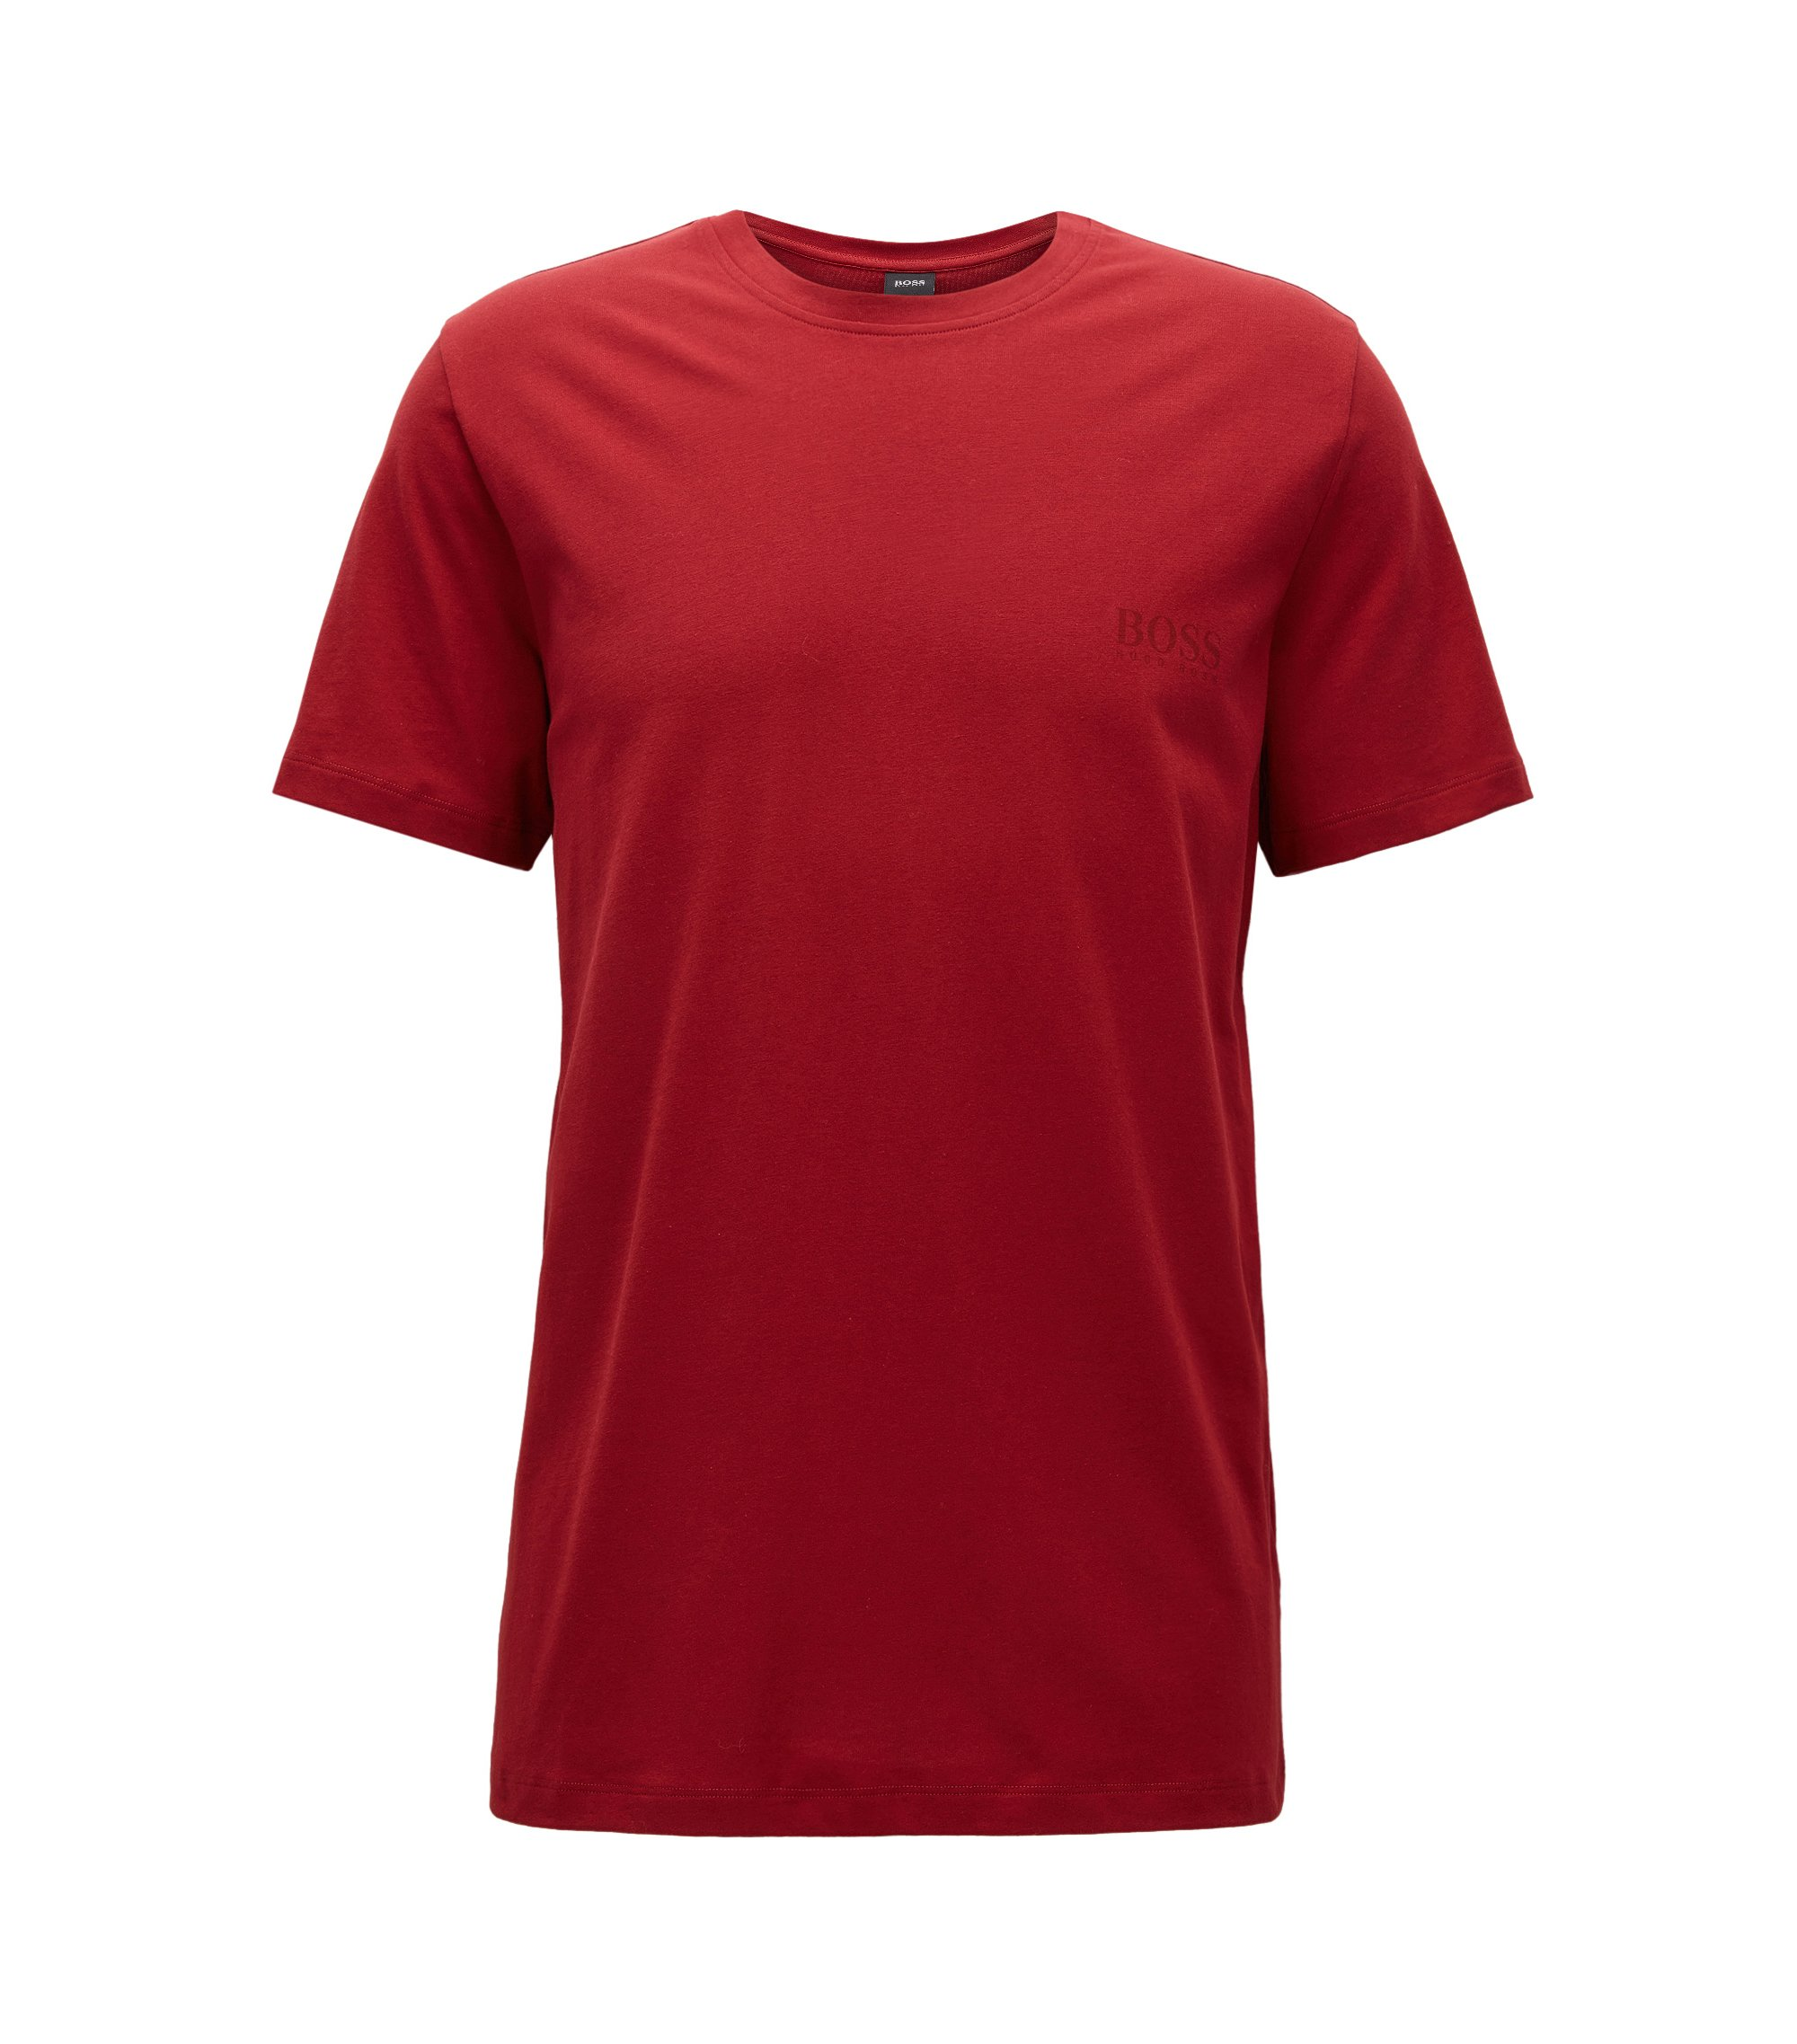 T-shirt Relaxed Fit en coton doux, Rouge sombre